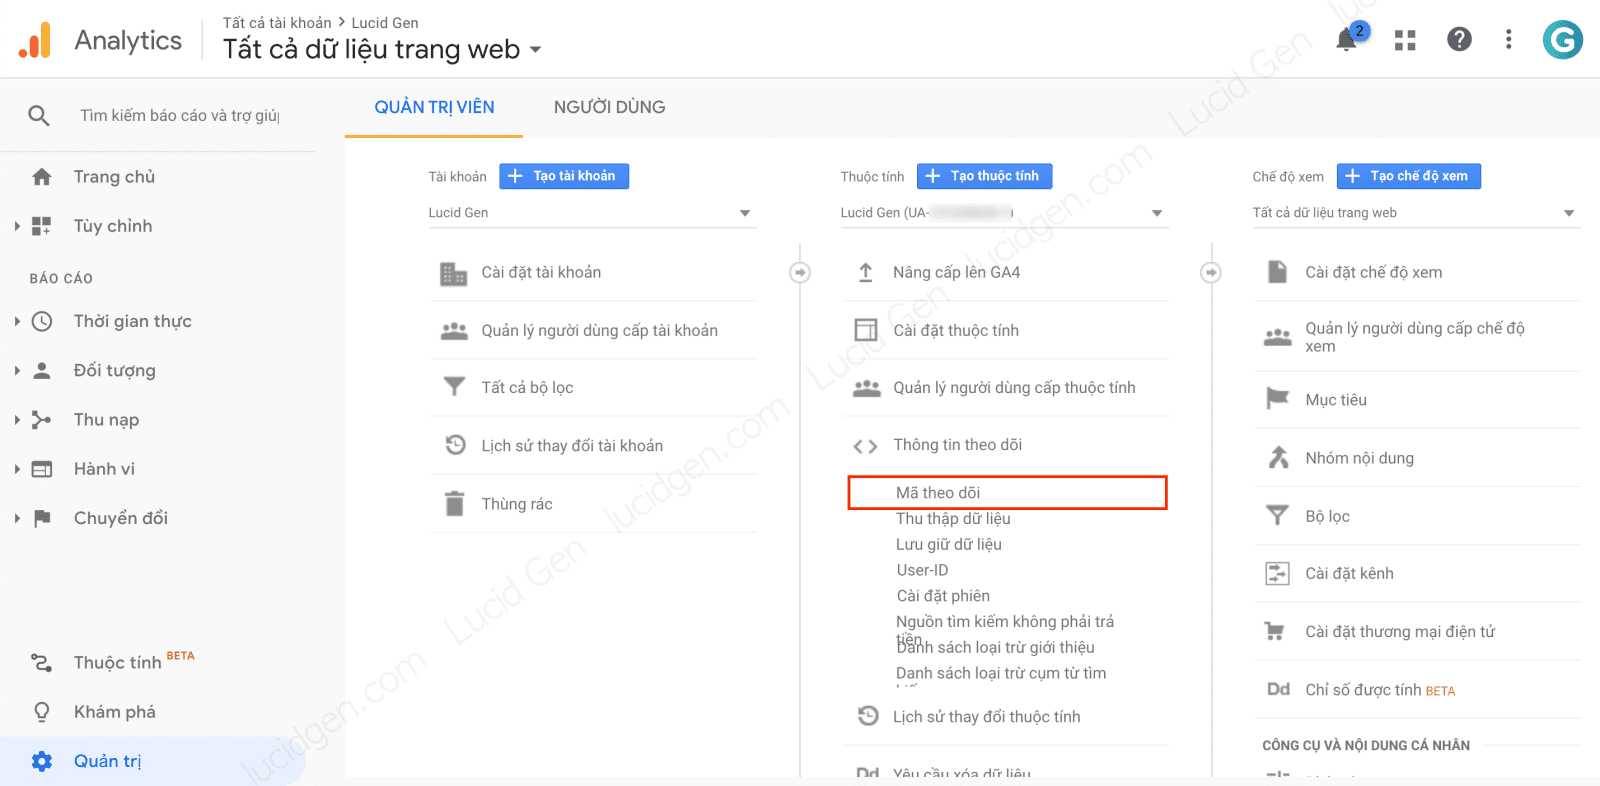 How to add Google Analytics to website Universal - Click Tracking Code in the properties section